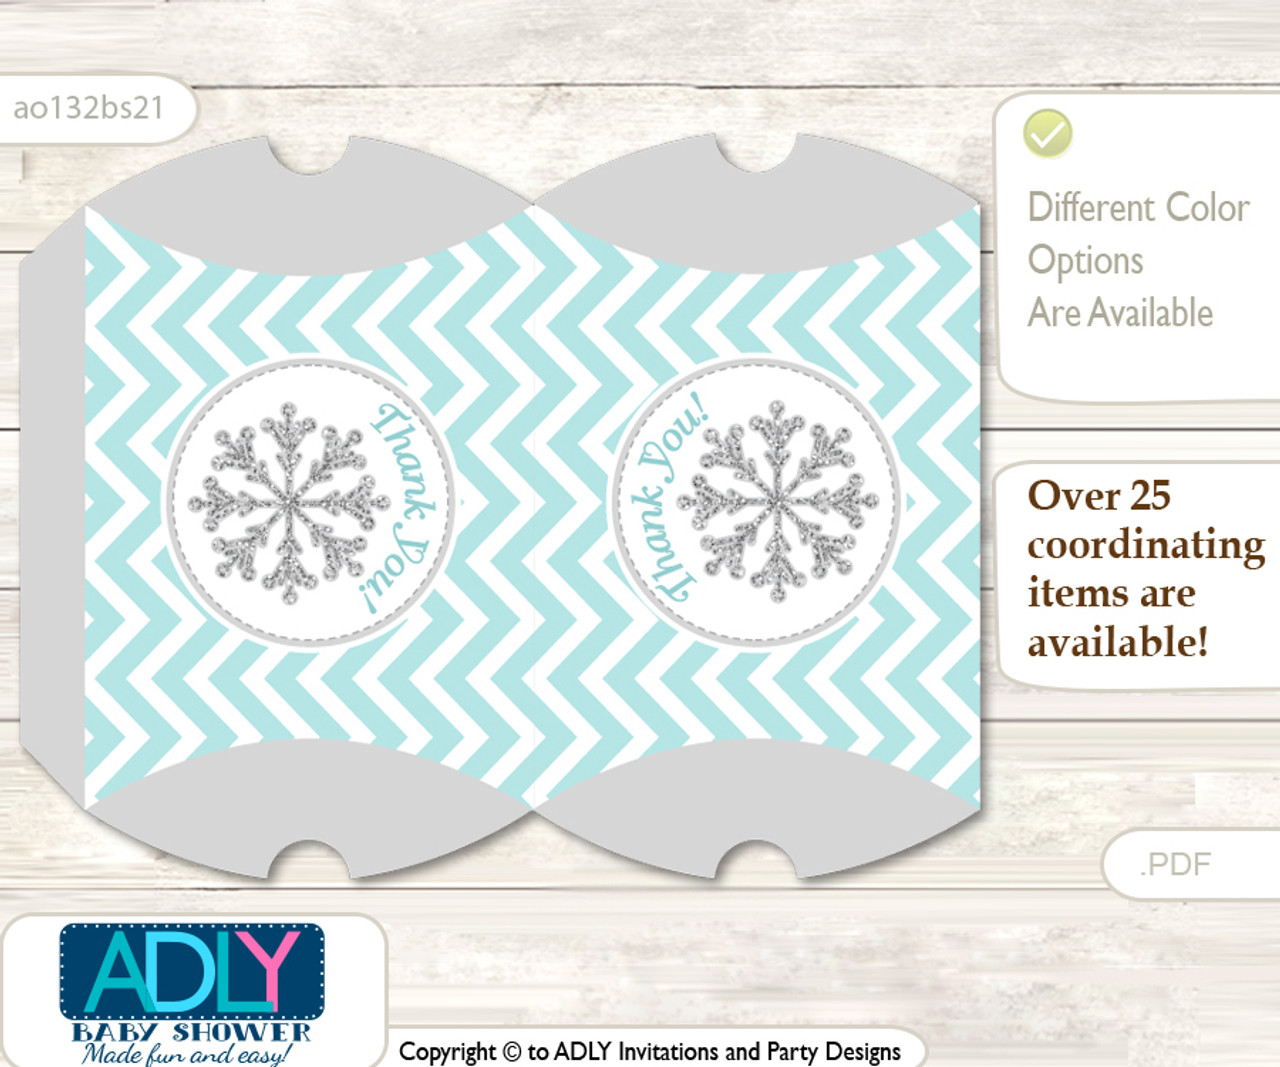 Neutral Snowflake Pillow Box For Candy Little Treats Or Small Gift Of Any Baby Shower Or Birthday Aqua Grey Chevron